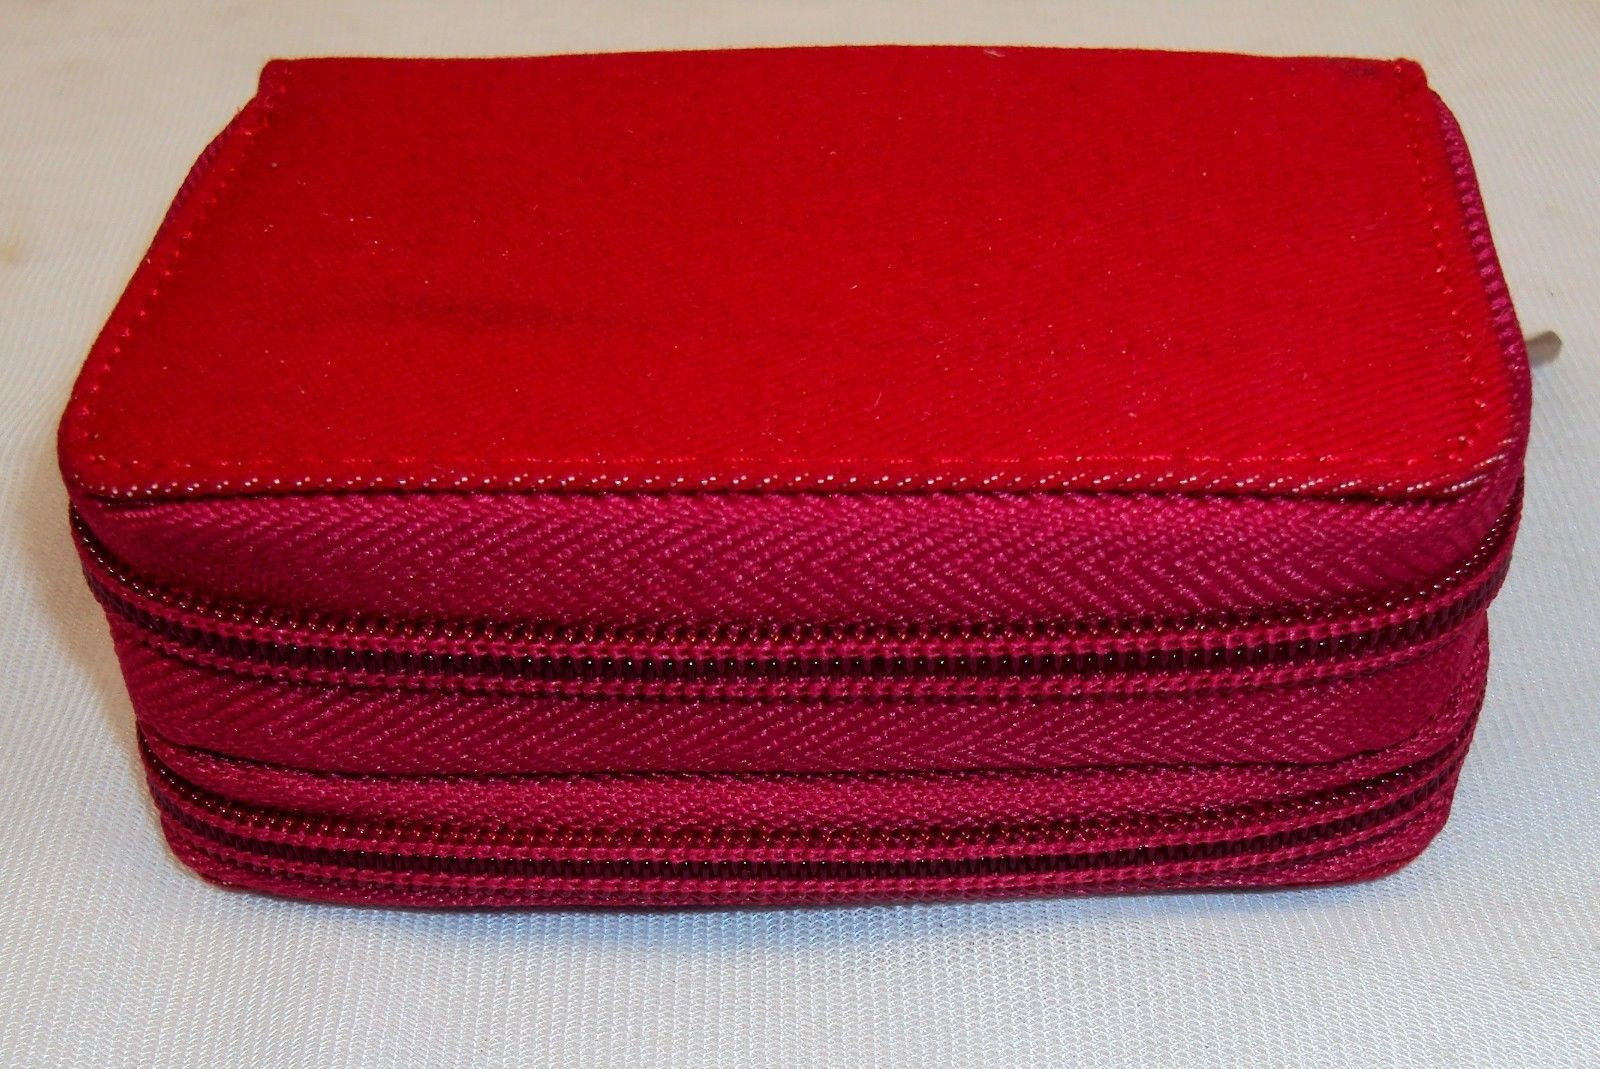 Buxton Red Denim Palm Wallet ~ Dual Zippered Compartments w/Exterior ID Window